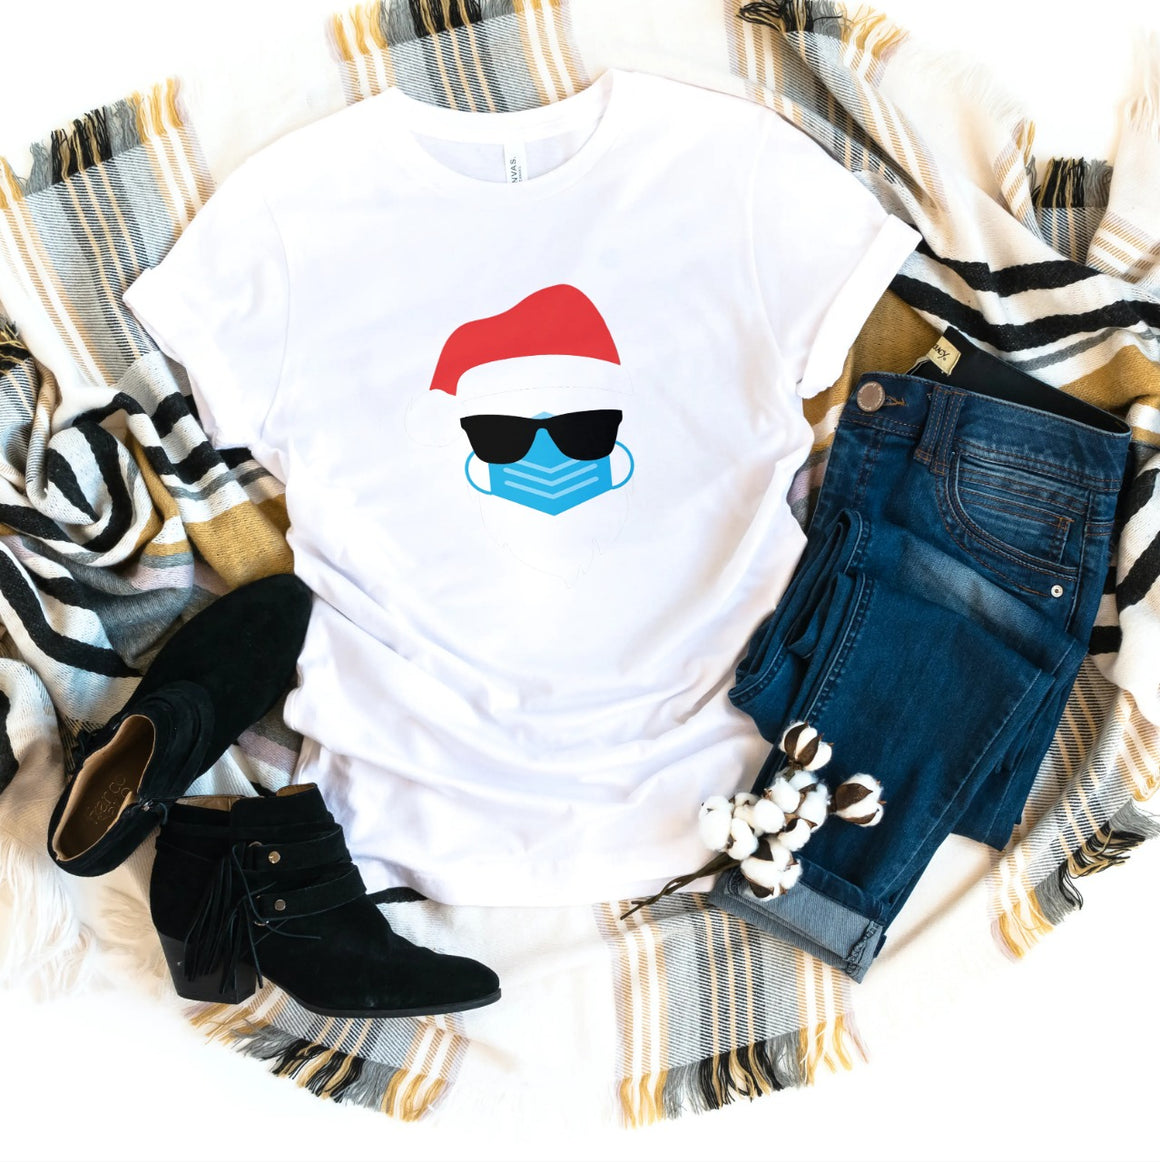 SANTA CLAUS IN SUNGLASSES WEARING A FACE MASK T-SHIRT - Gray's Active Wear Printing